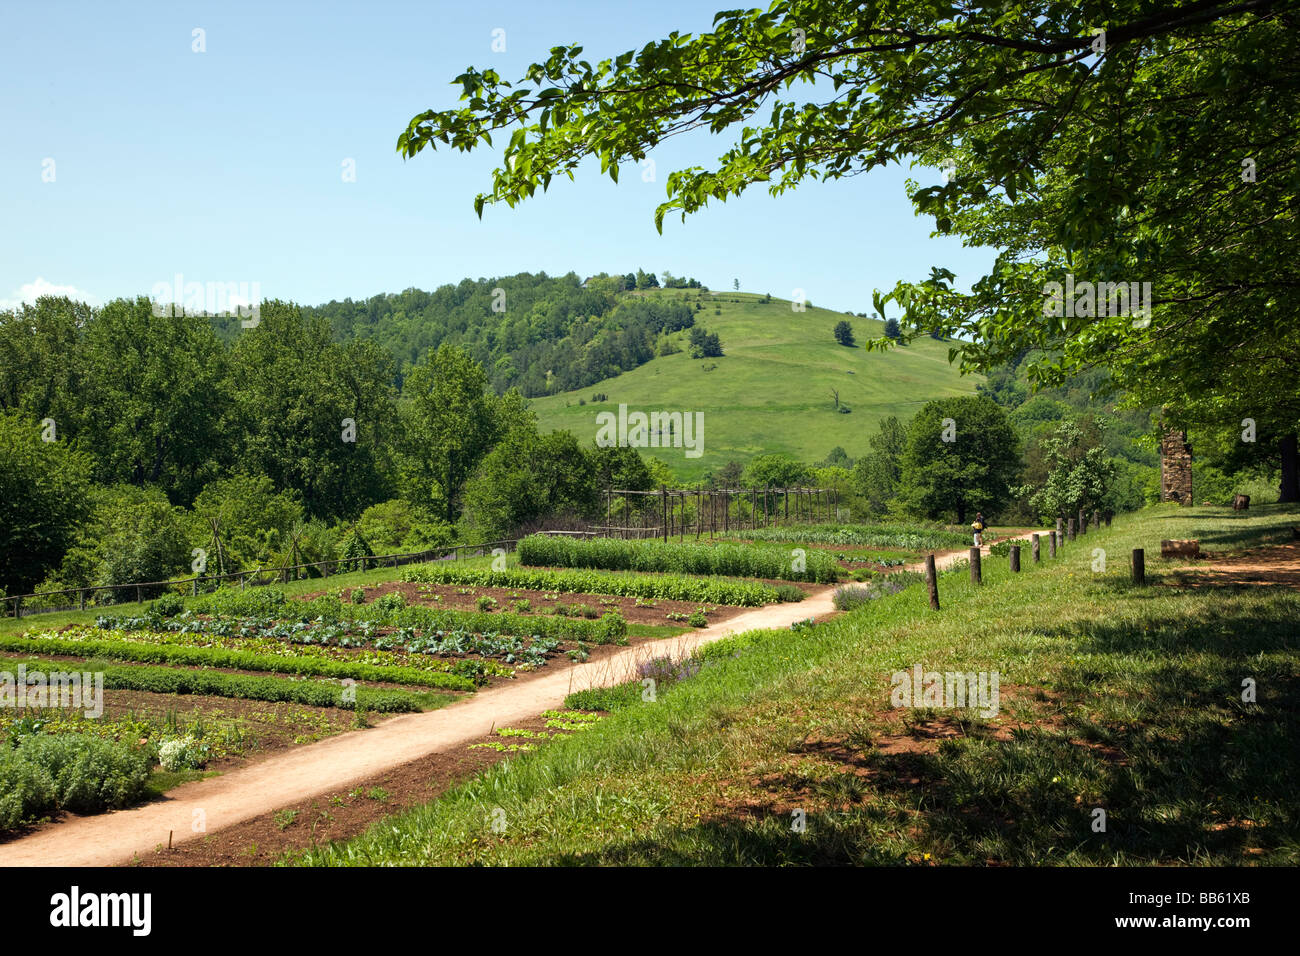 The Vegetable And Flower Gardens At Monticello Thomas